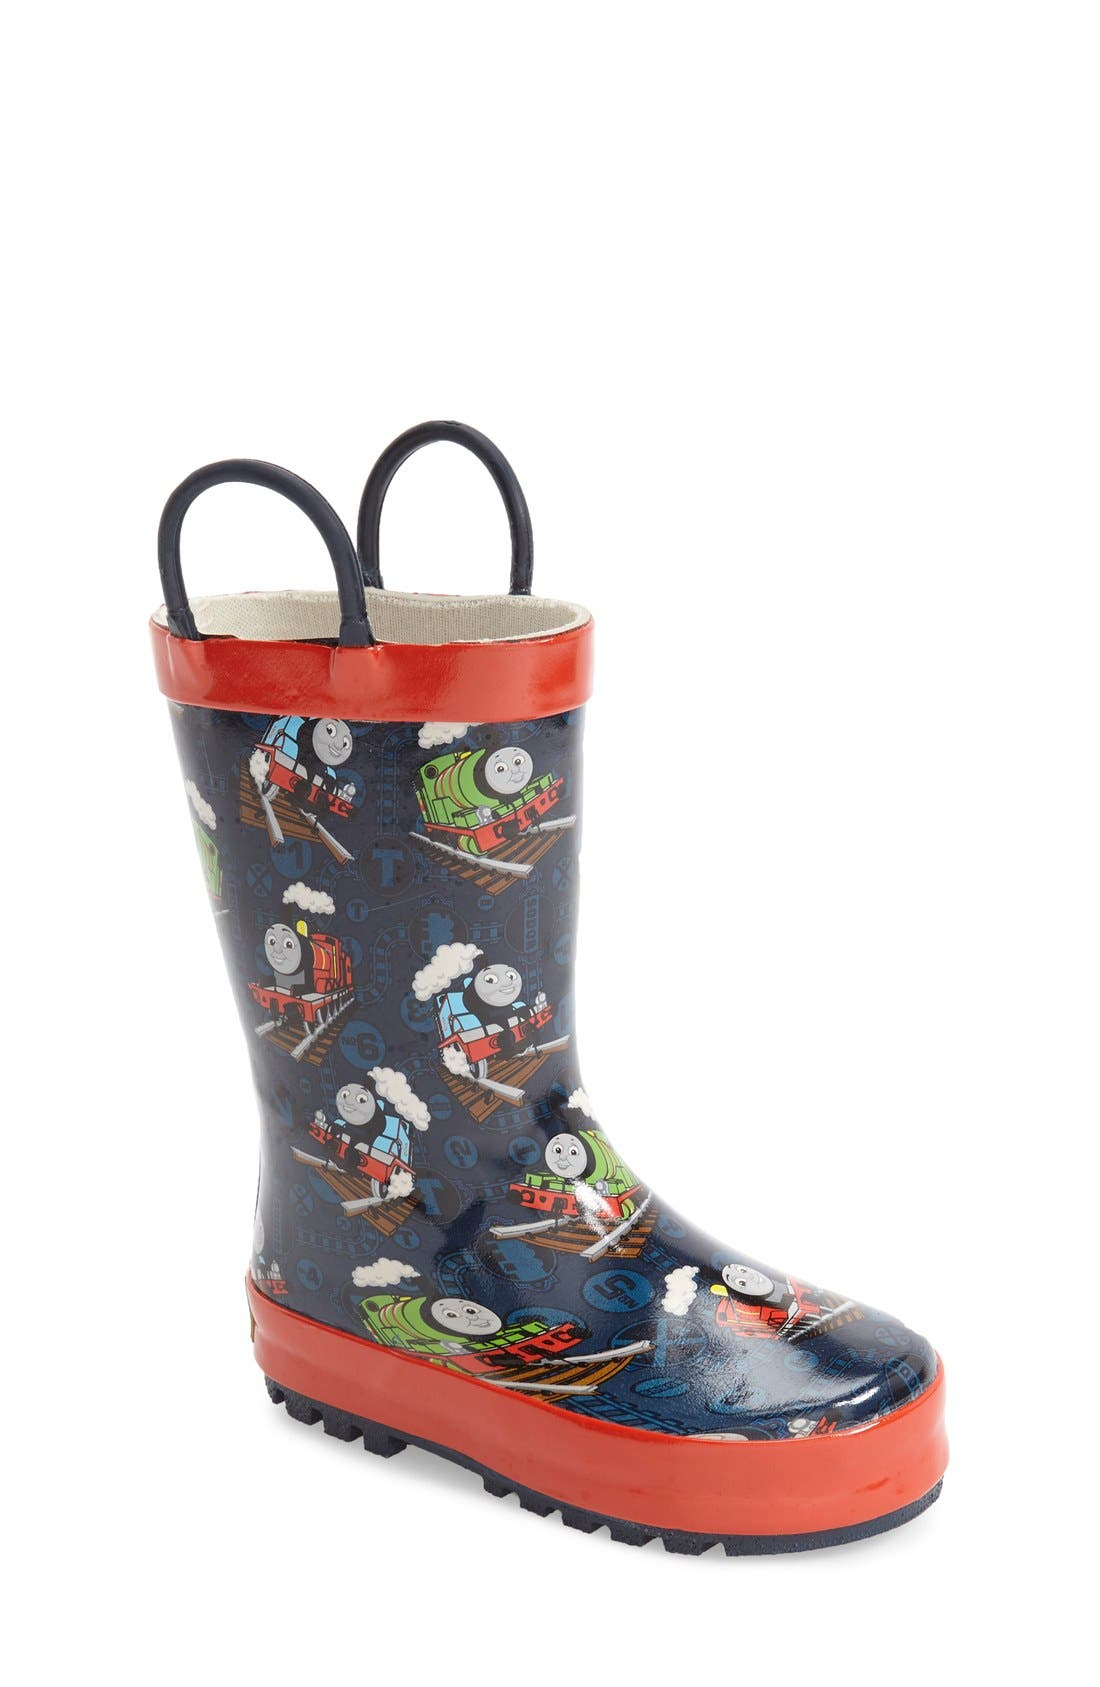 Thomas & Friends<sup>®</sup> Rain Boot,                         Main,                         color,